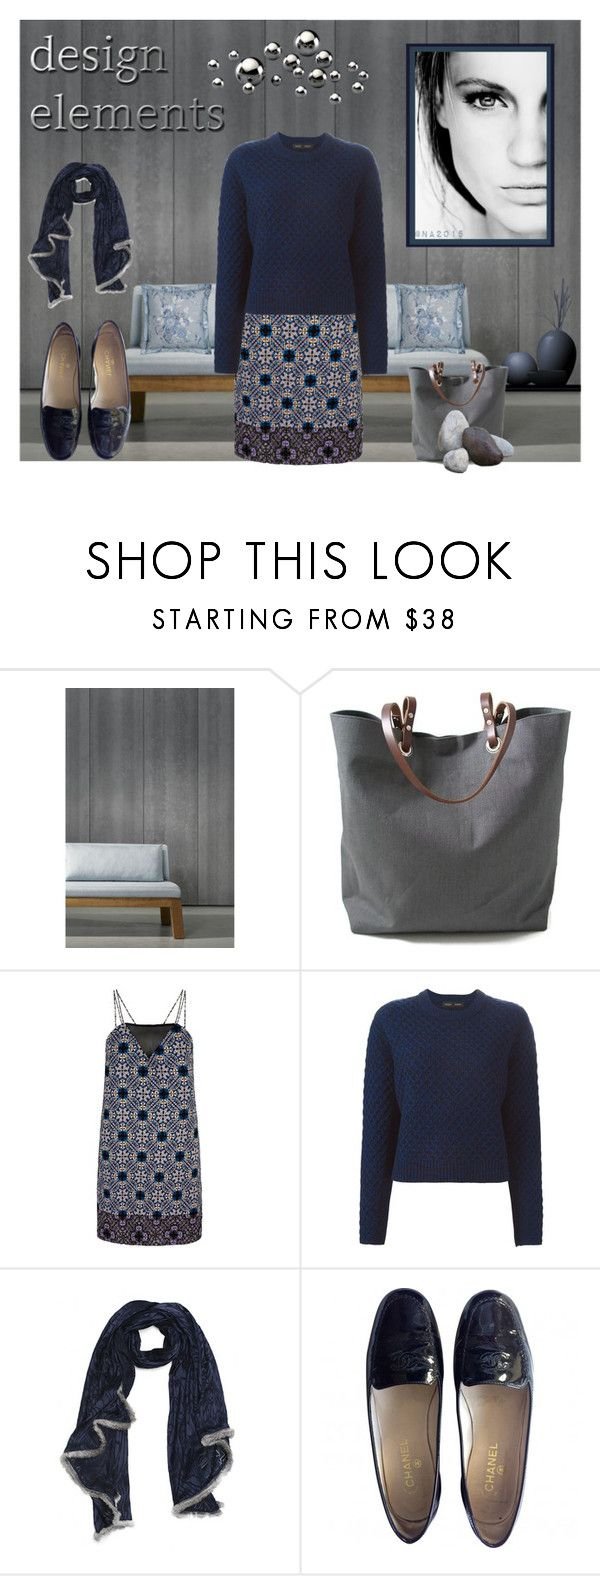 """""""ELEMENTS"""" by menina-ana ❤ liked on Polyvore featuring moda, NLXL, Independent Reign, Mela Loves London, Proenza Schouler, GE, Chanel e Ralph Lauren"""